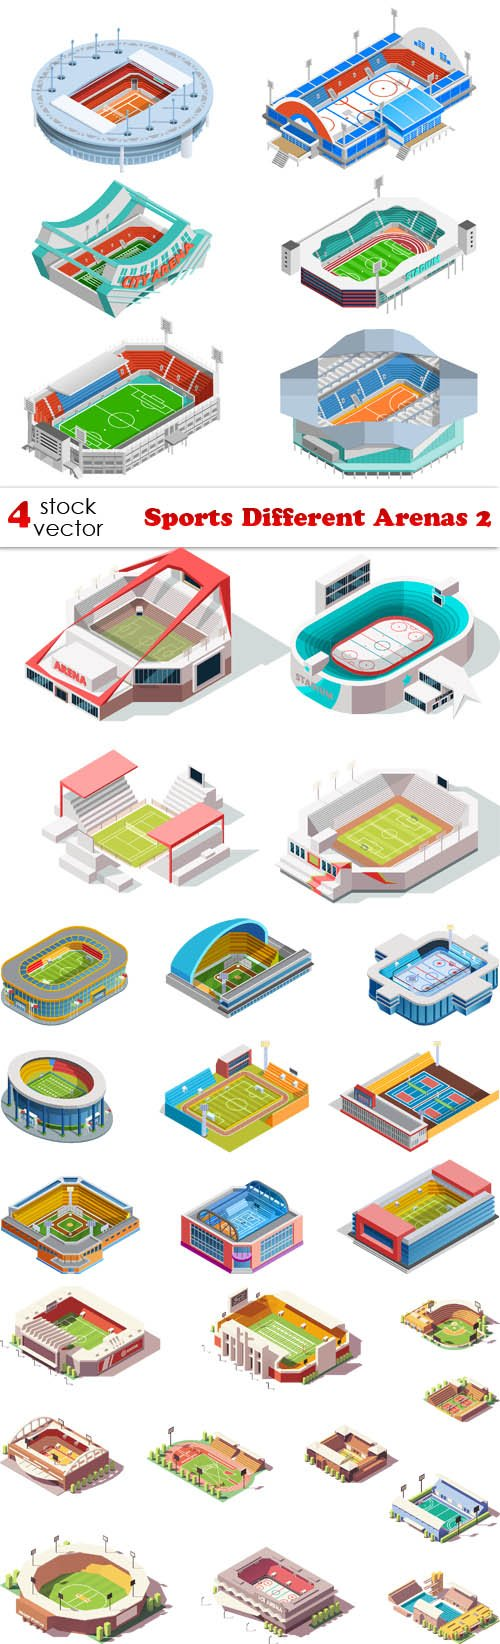 Vectors - Sports Different Arenas 2